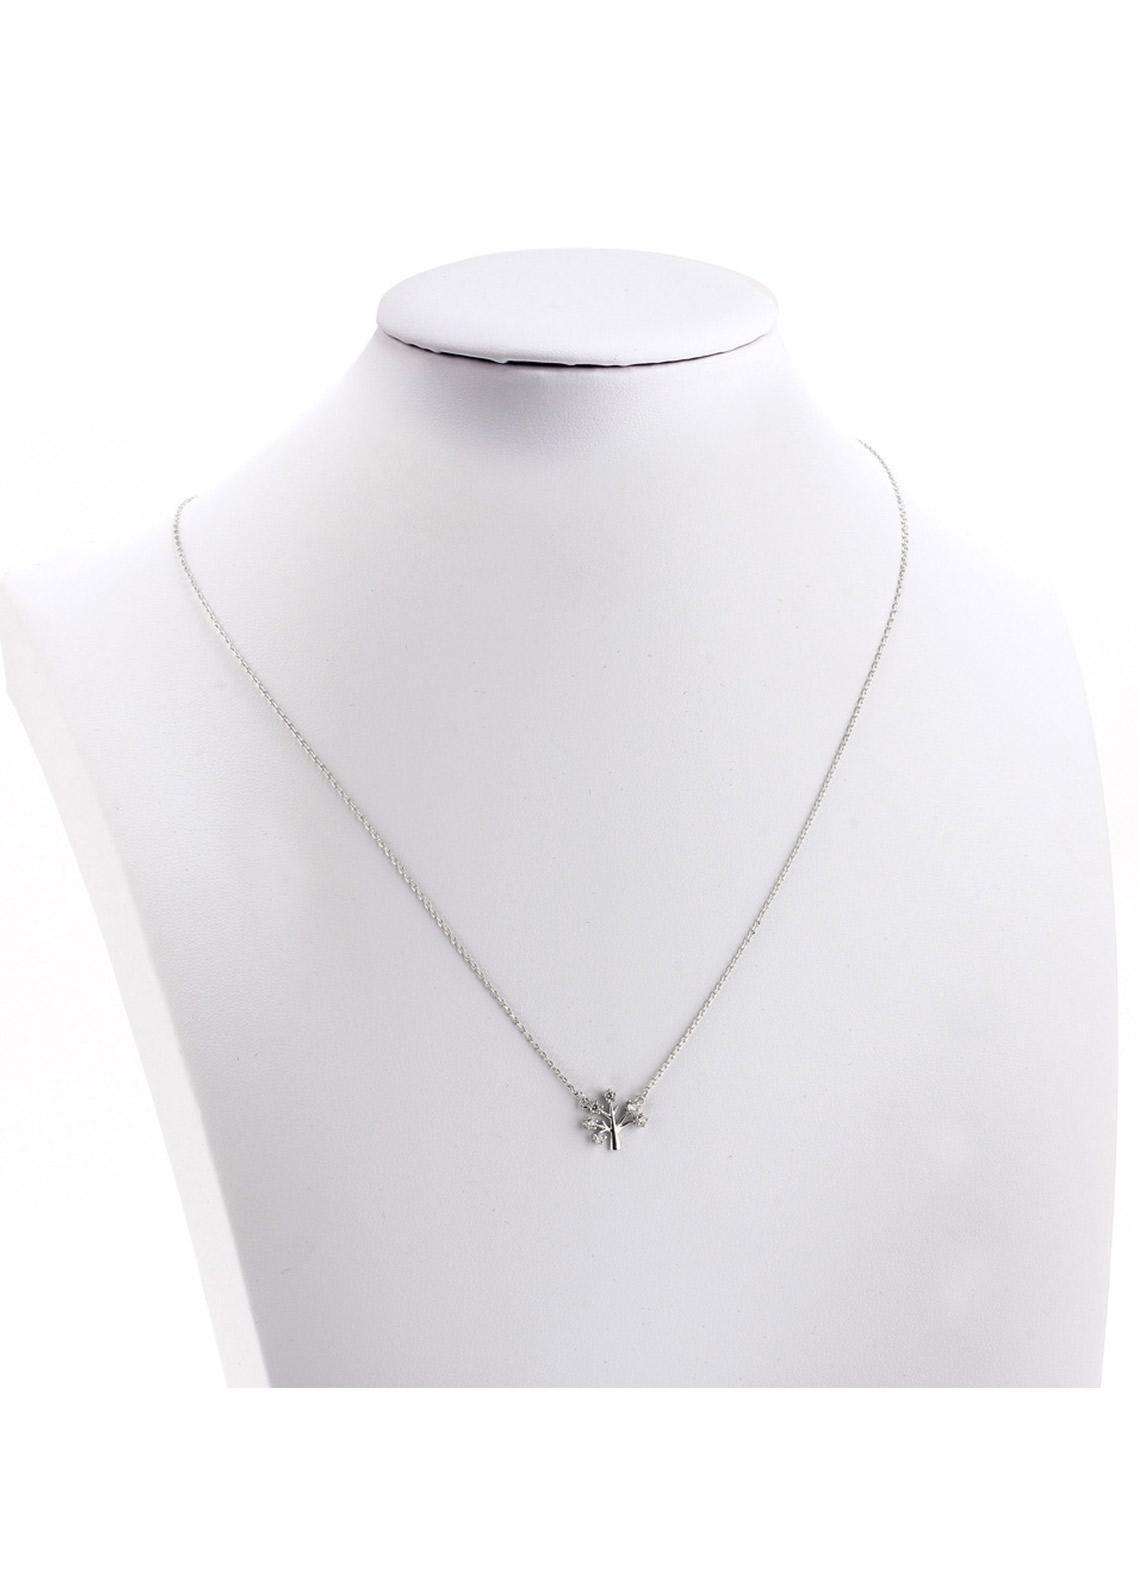 Anna Grace London by Silk Avenue Silver Plated Crystal Tree Necklace AGN0041 - Ladies Jewellery